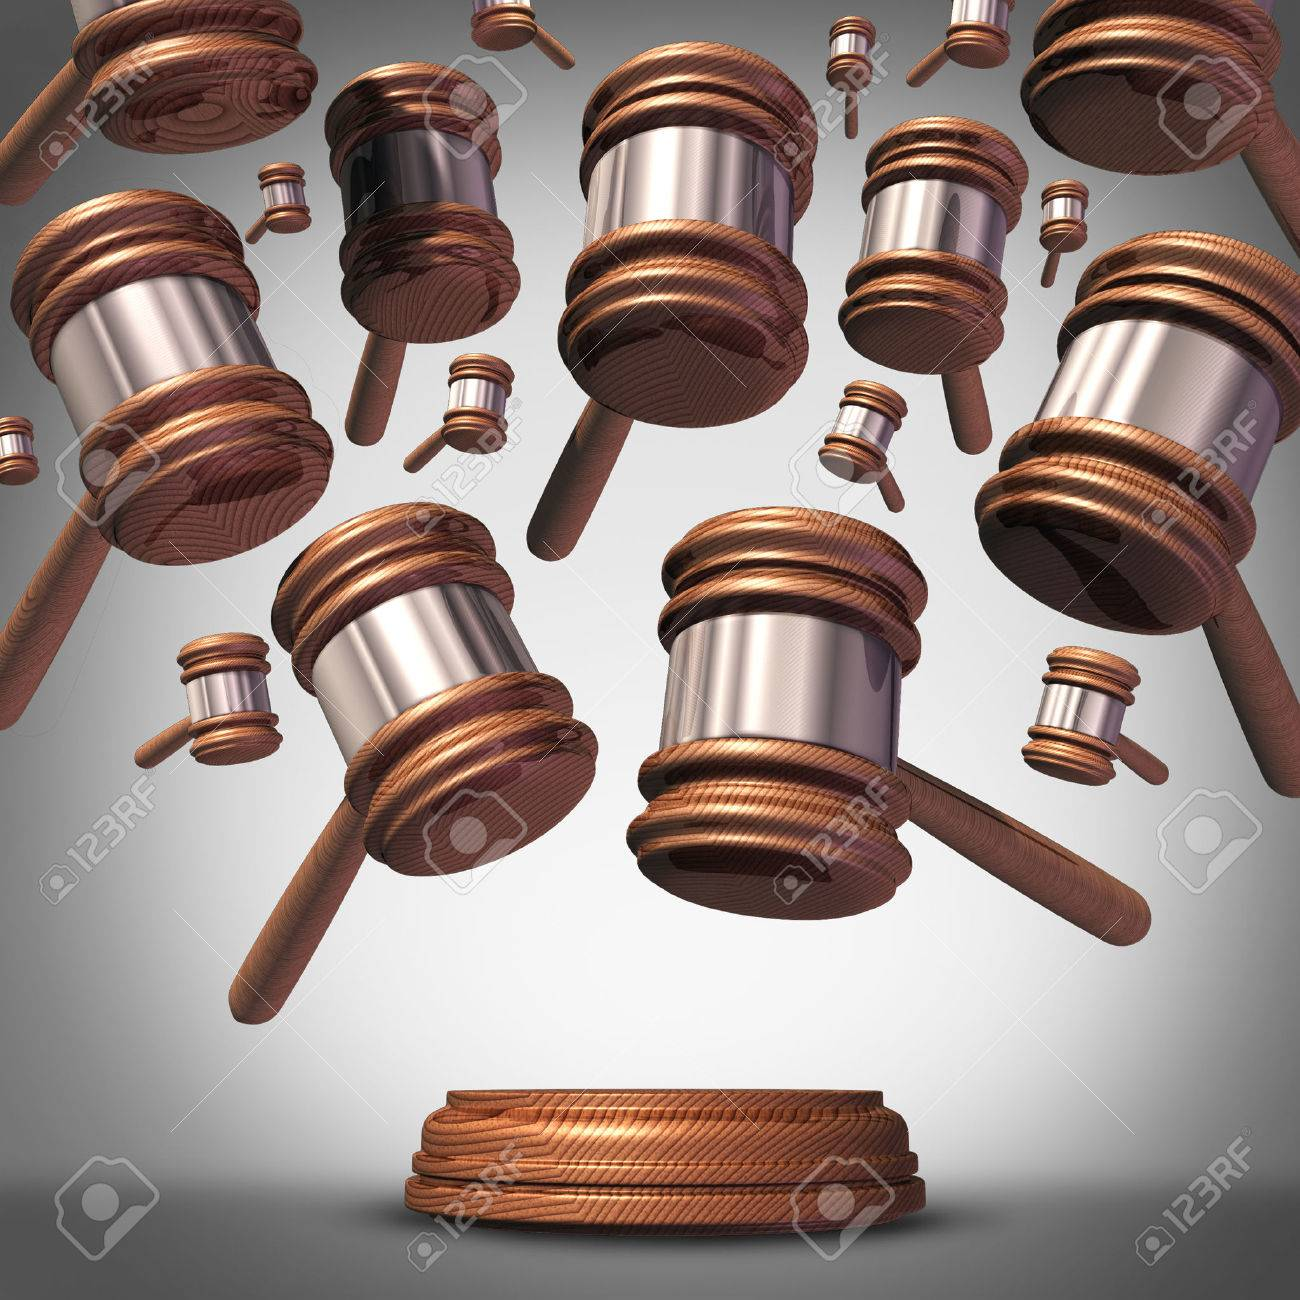 Class action lawsuit concept as a plaintiff group represented class action lawsuit concept as a plaintiff group represented by many judge mallets or gavel icons biocorpaavc Choice Image